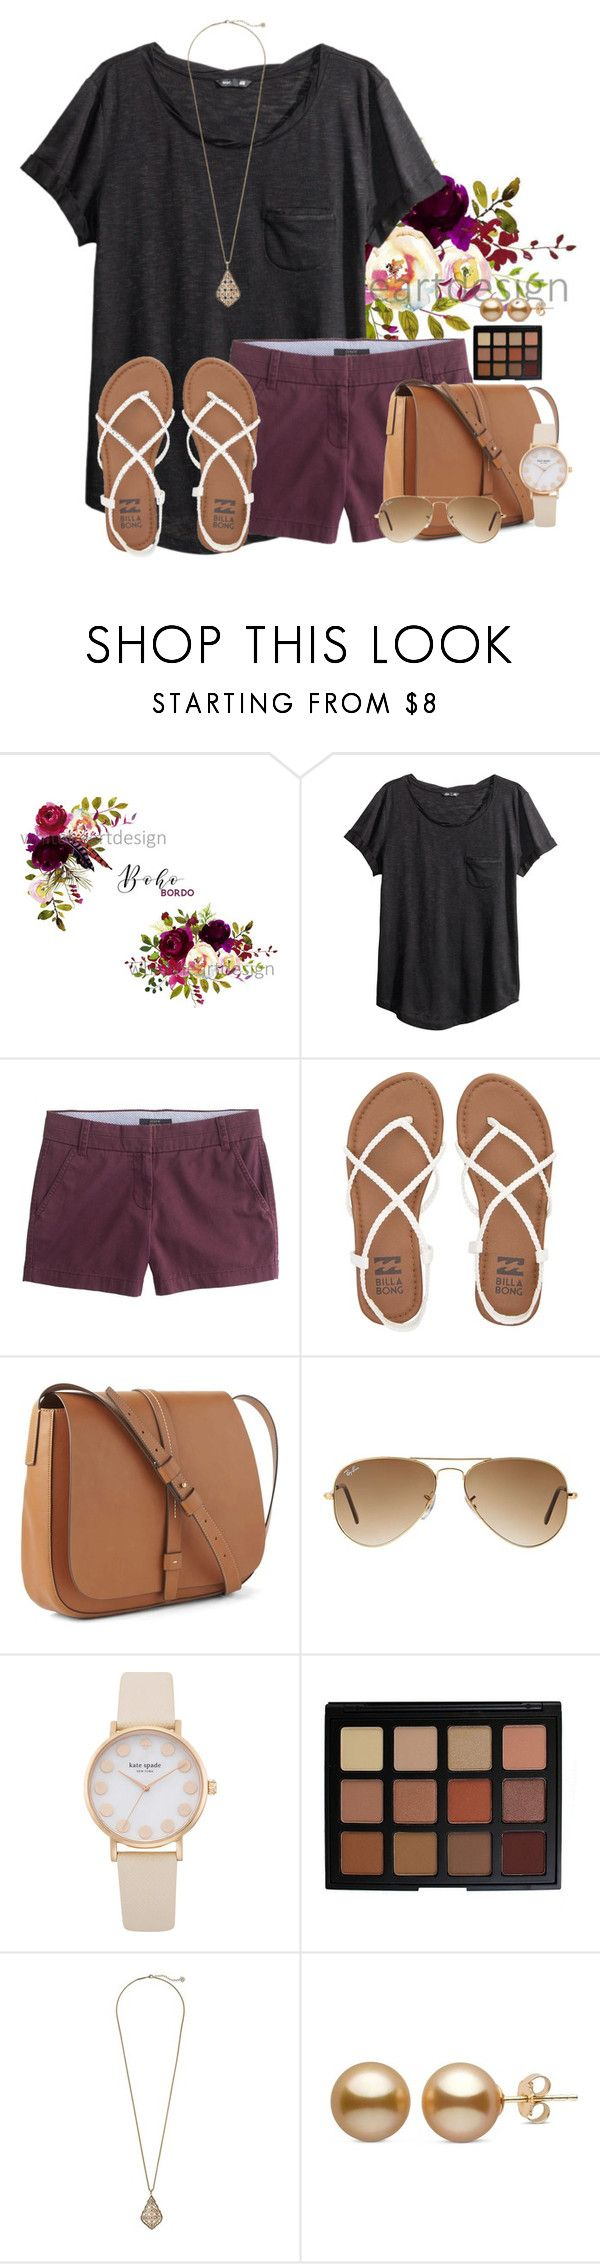 """~Im loving it~"" by victoriaann34 ❤ liked on Polyvore featuring H&M, J.Crew, Billabong, Gap, Ray-Ban, Morphe and Kendra Scott"